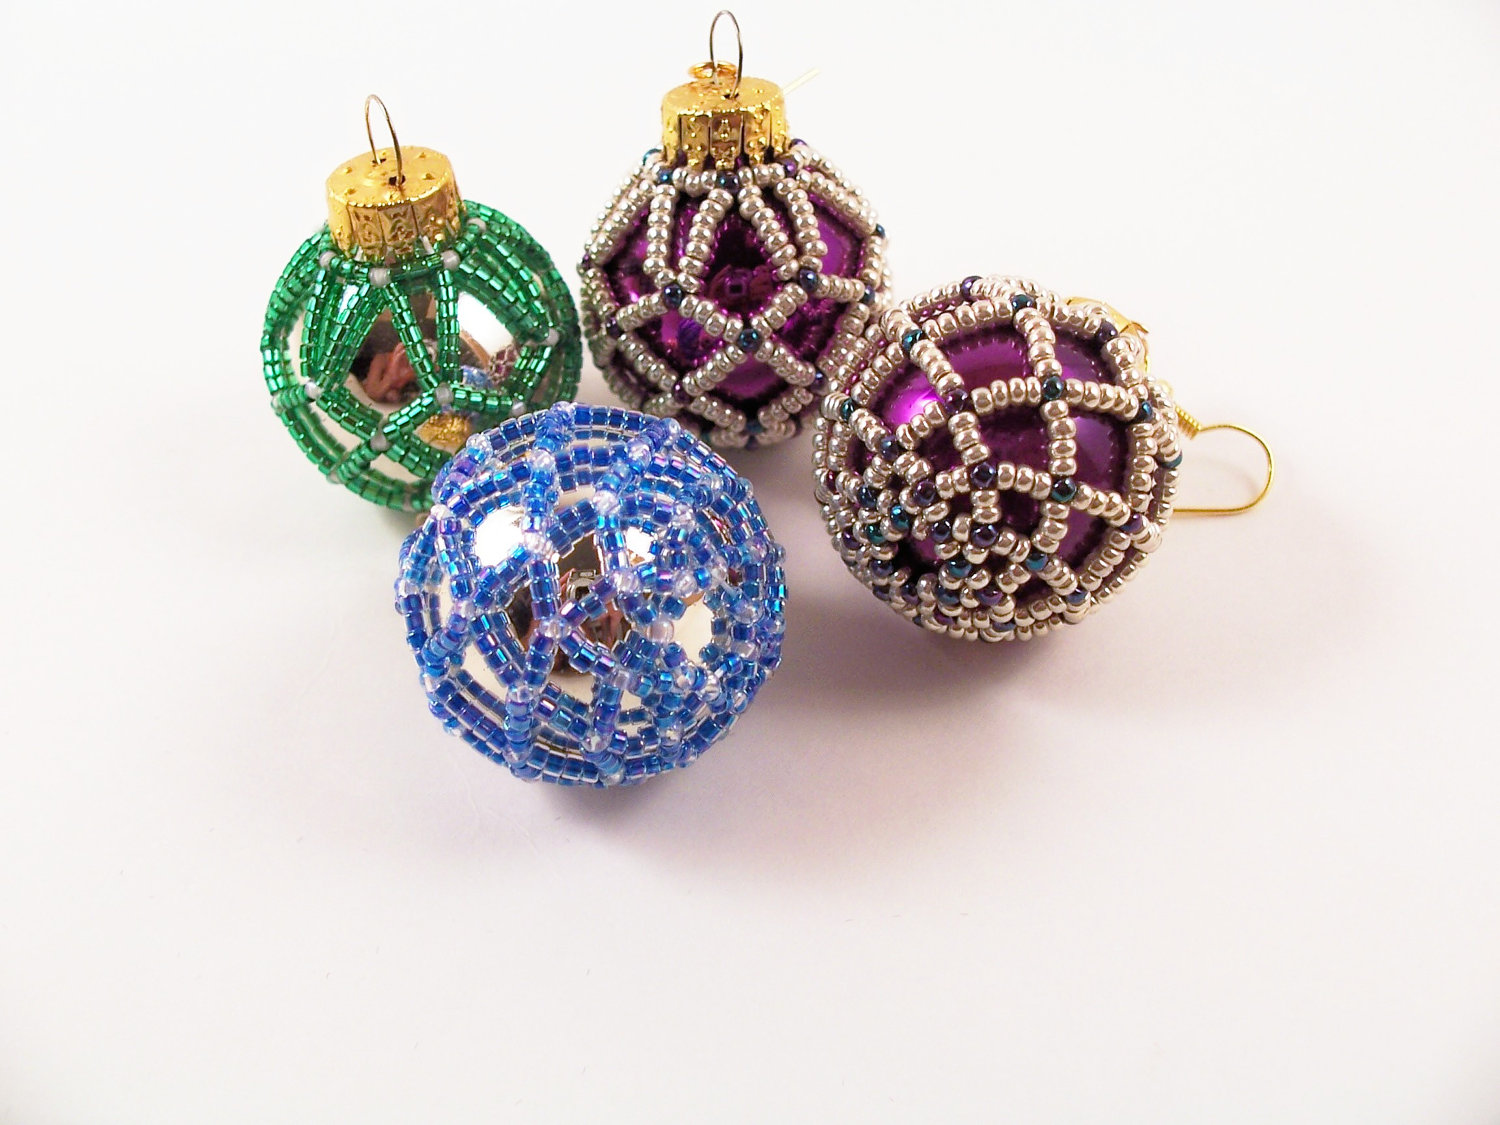 Beaded Christmas Ornaments.Beaded Christmas Ornament Pattern 3 Net Beading Tutorial In Pdf